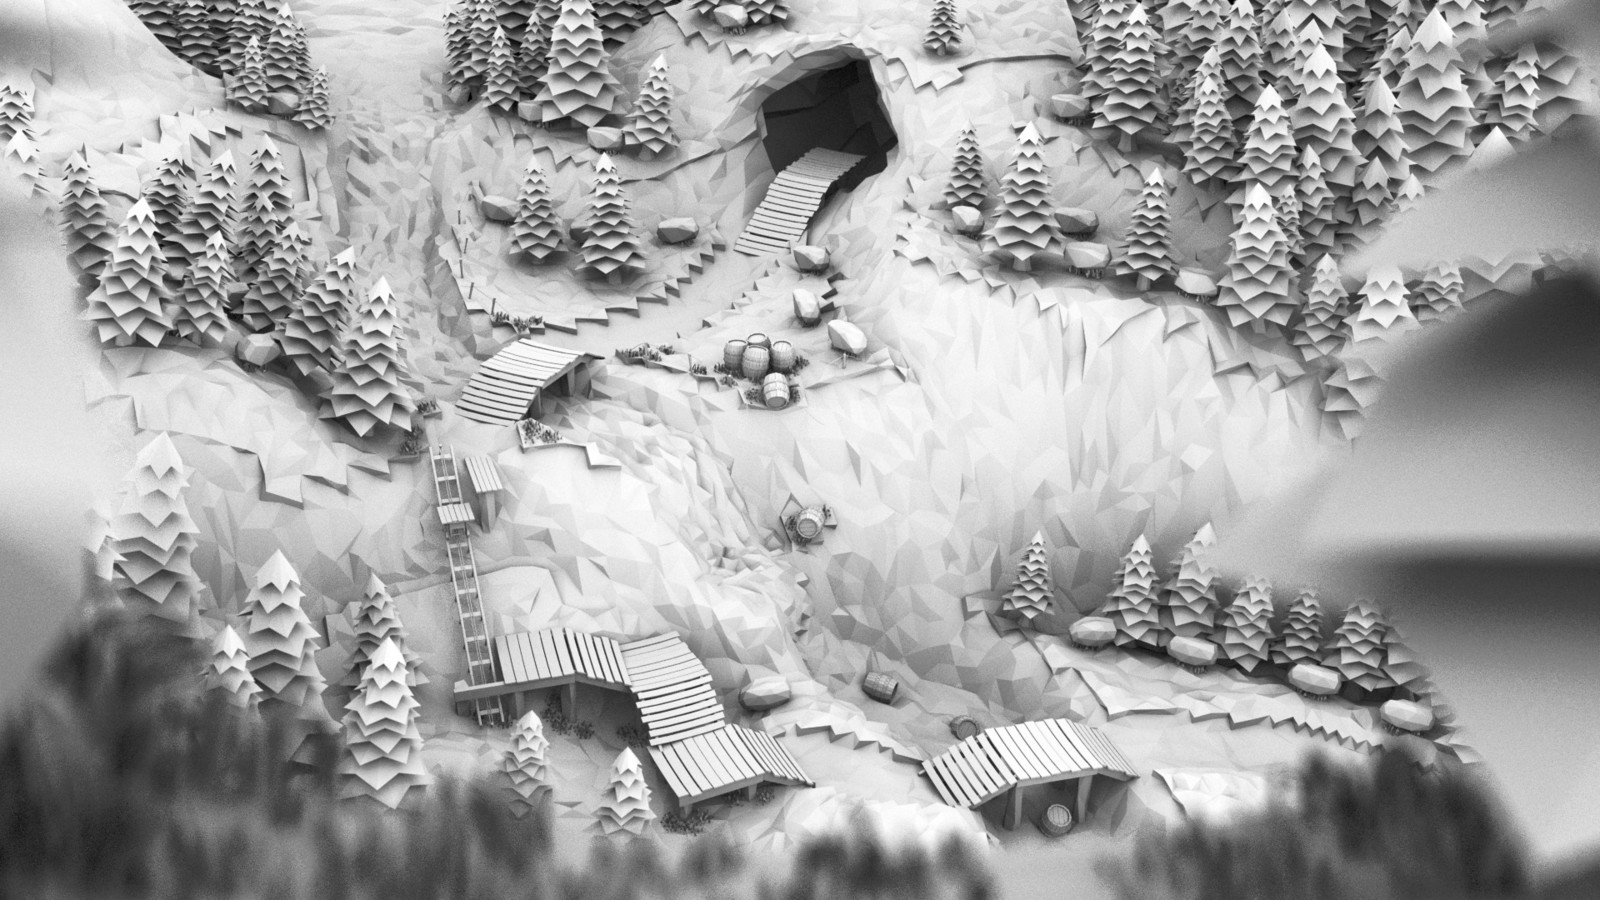 Ambient Occlusion mixed with a bit of a Shadow Pass